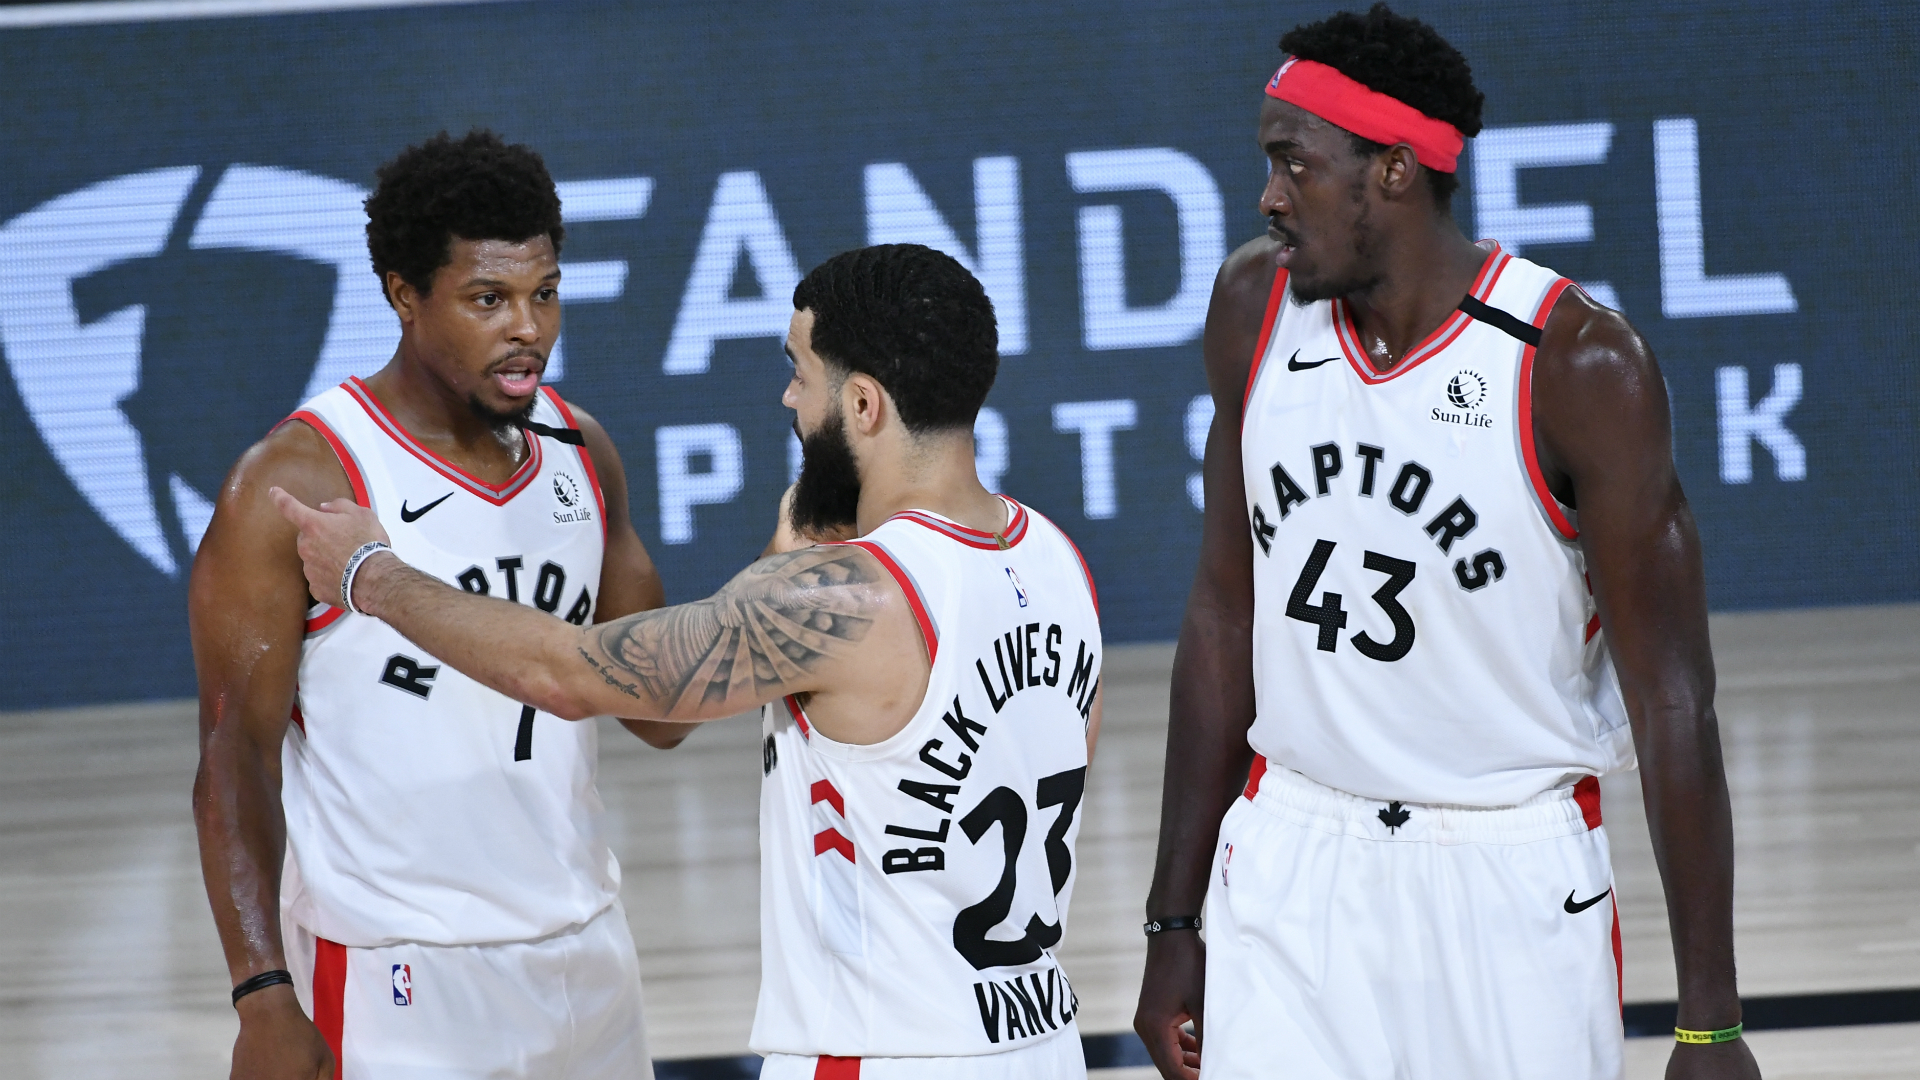 Nurse's star continues to shine but Toronto lack dominant figures – Raptors season review in Stats Perform data